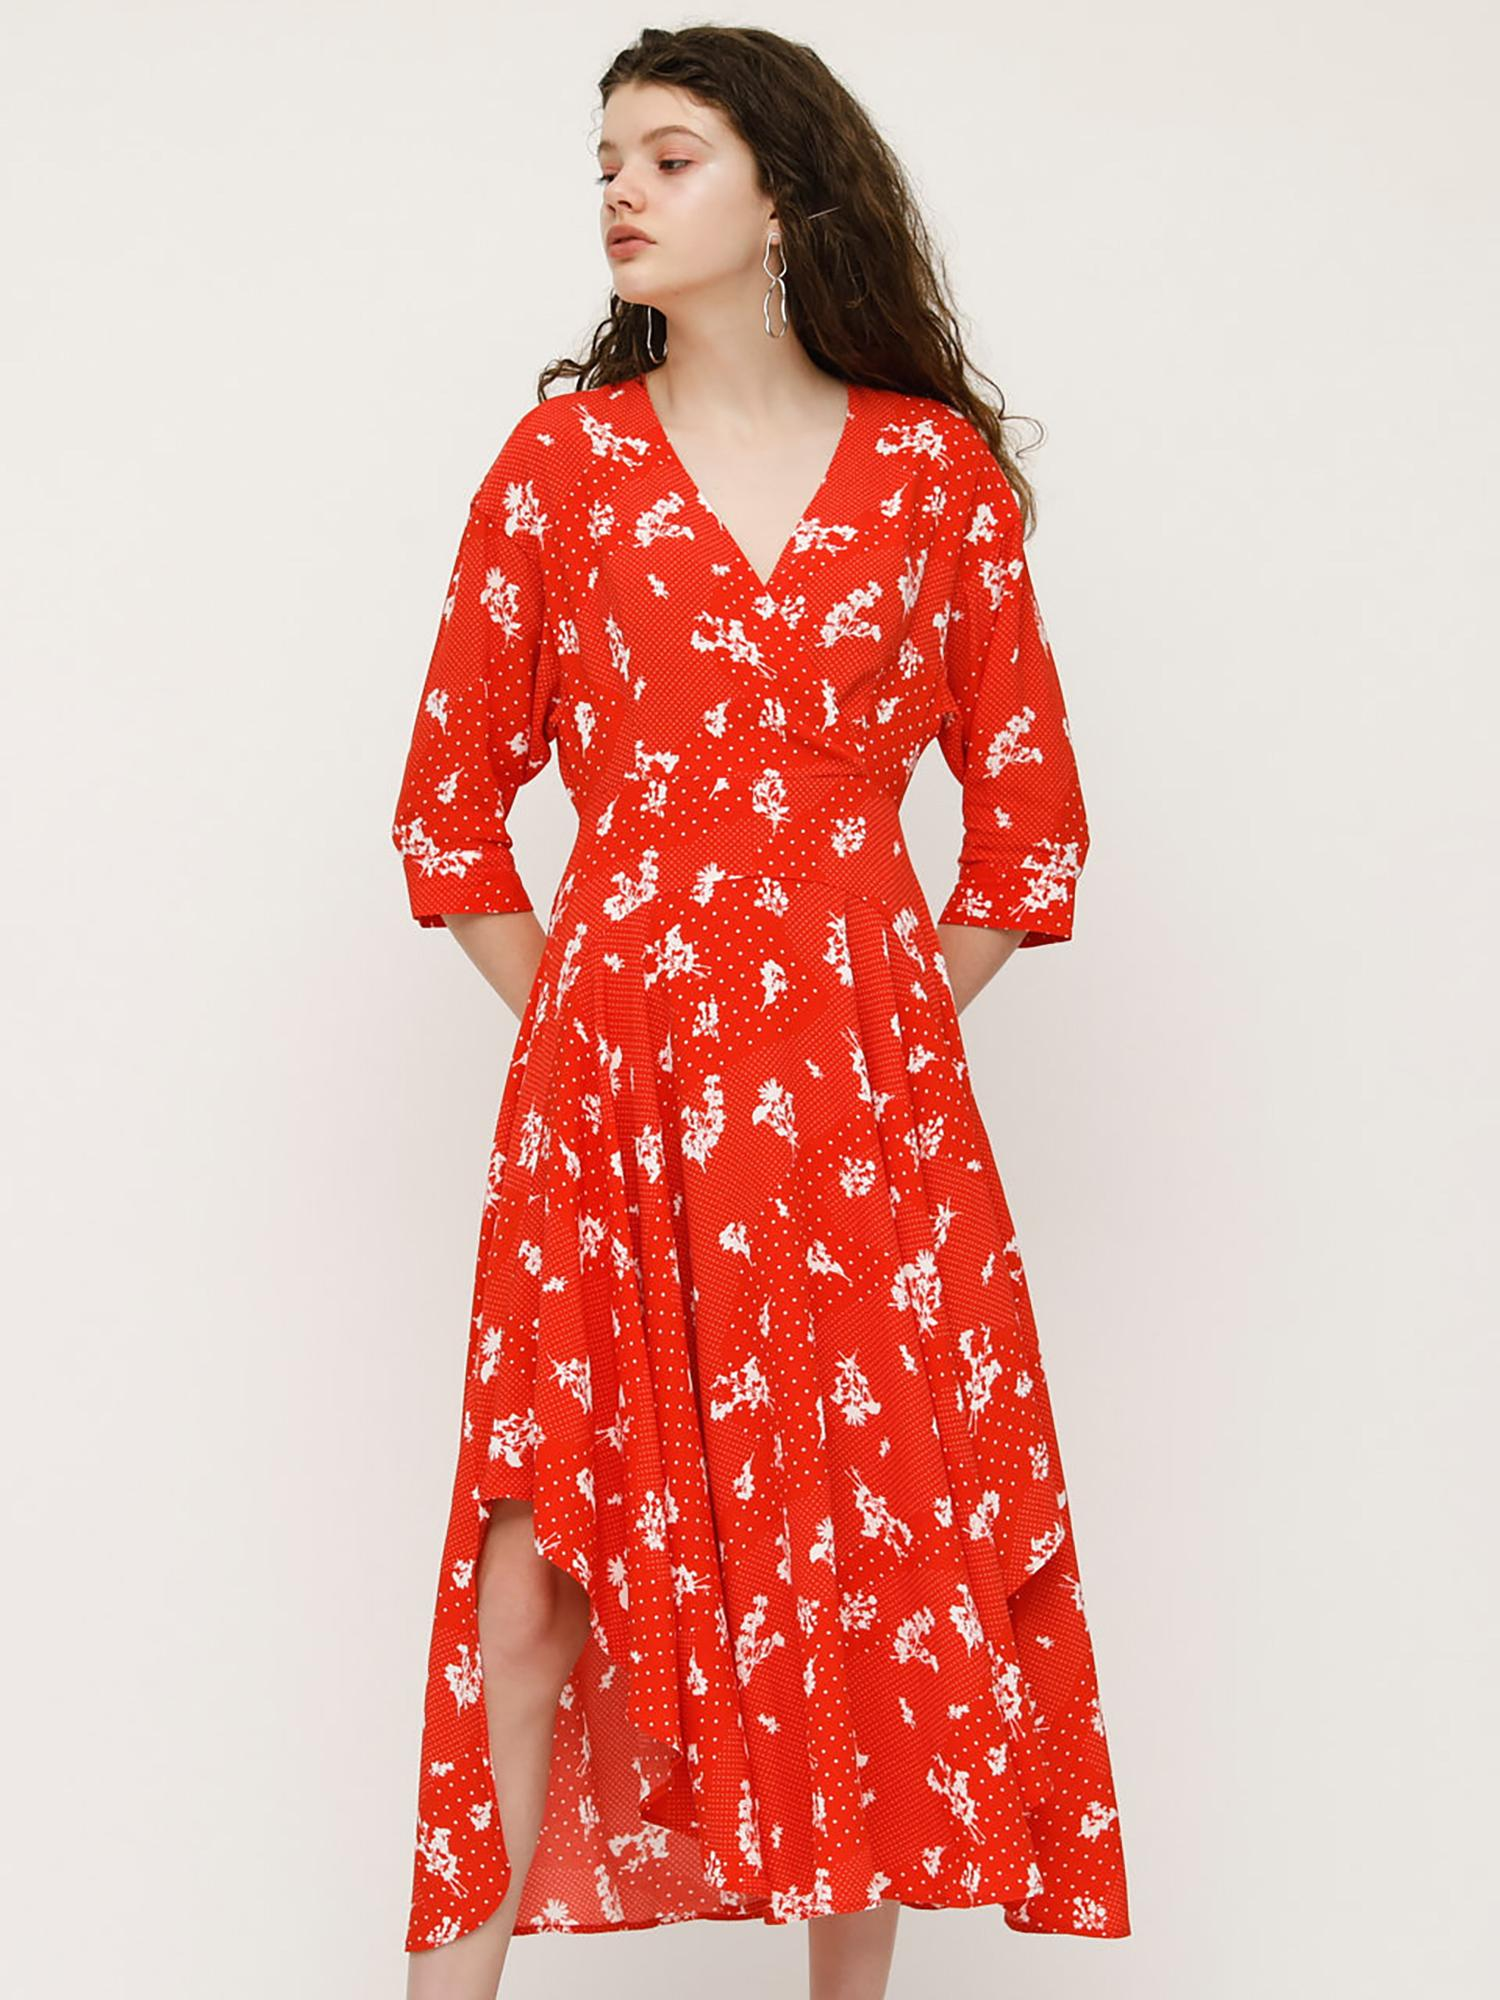 POSY WAY ROUND HEM DRESS